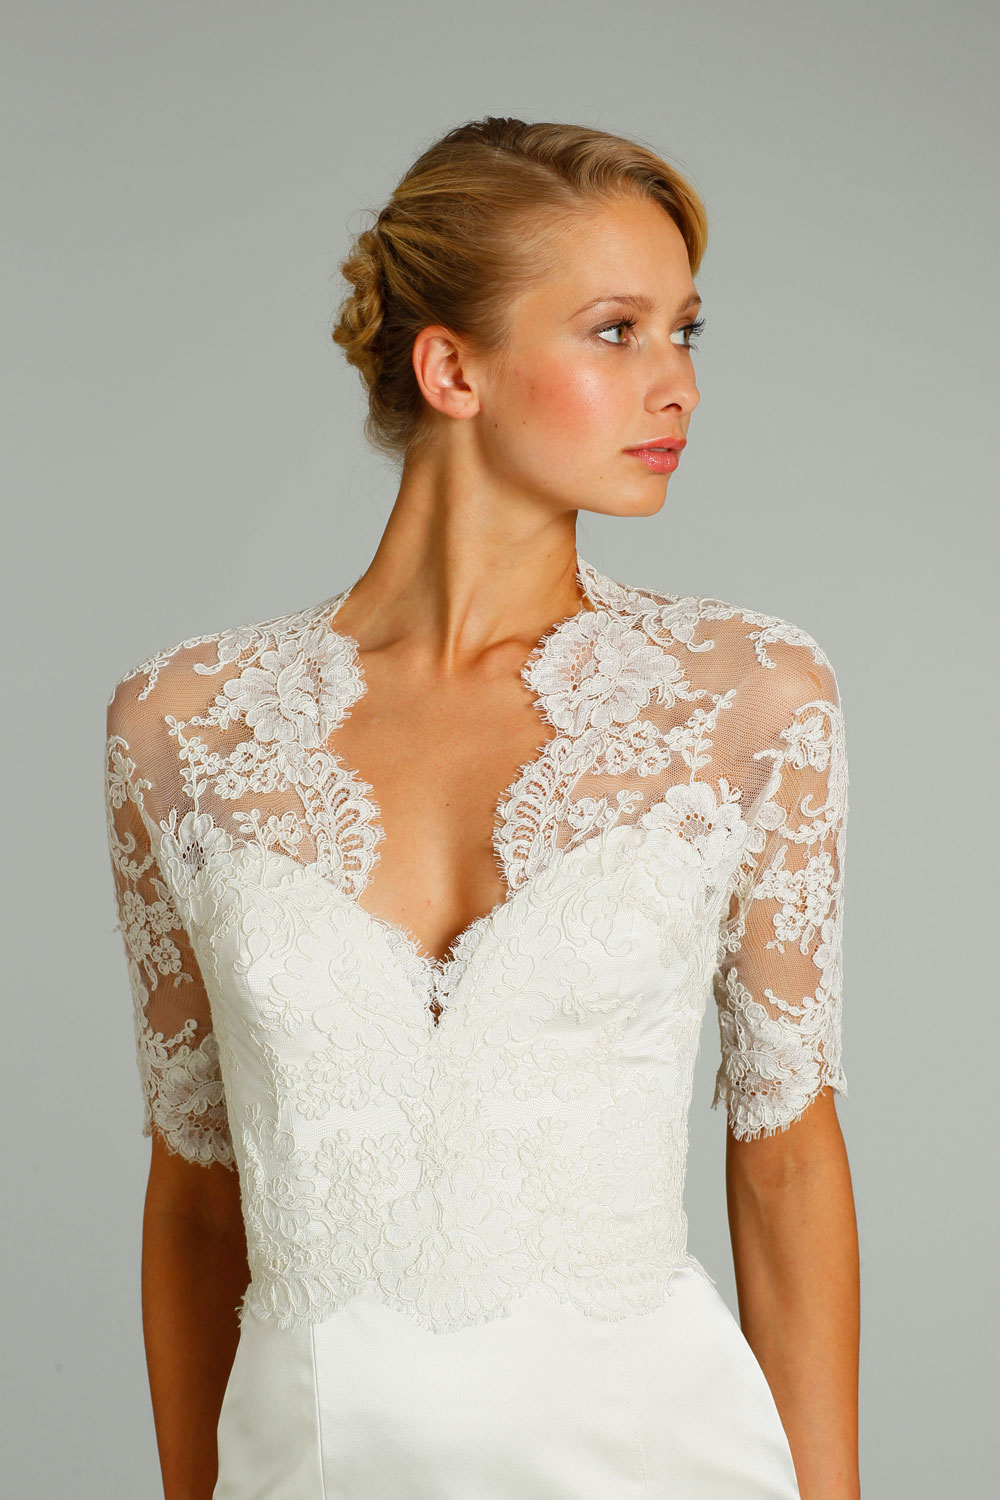 Fall 2012 wedding dress jim hjelm bridal gowns 8256 detail for Jim hjelm wedding dresses